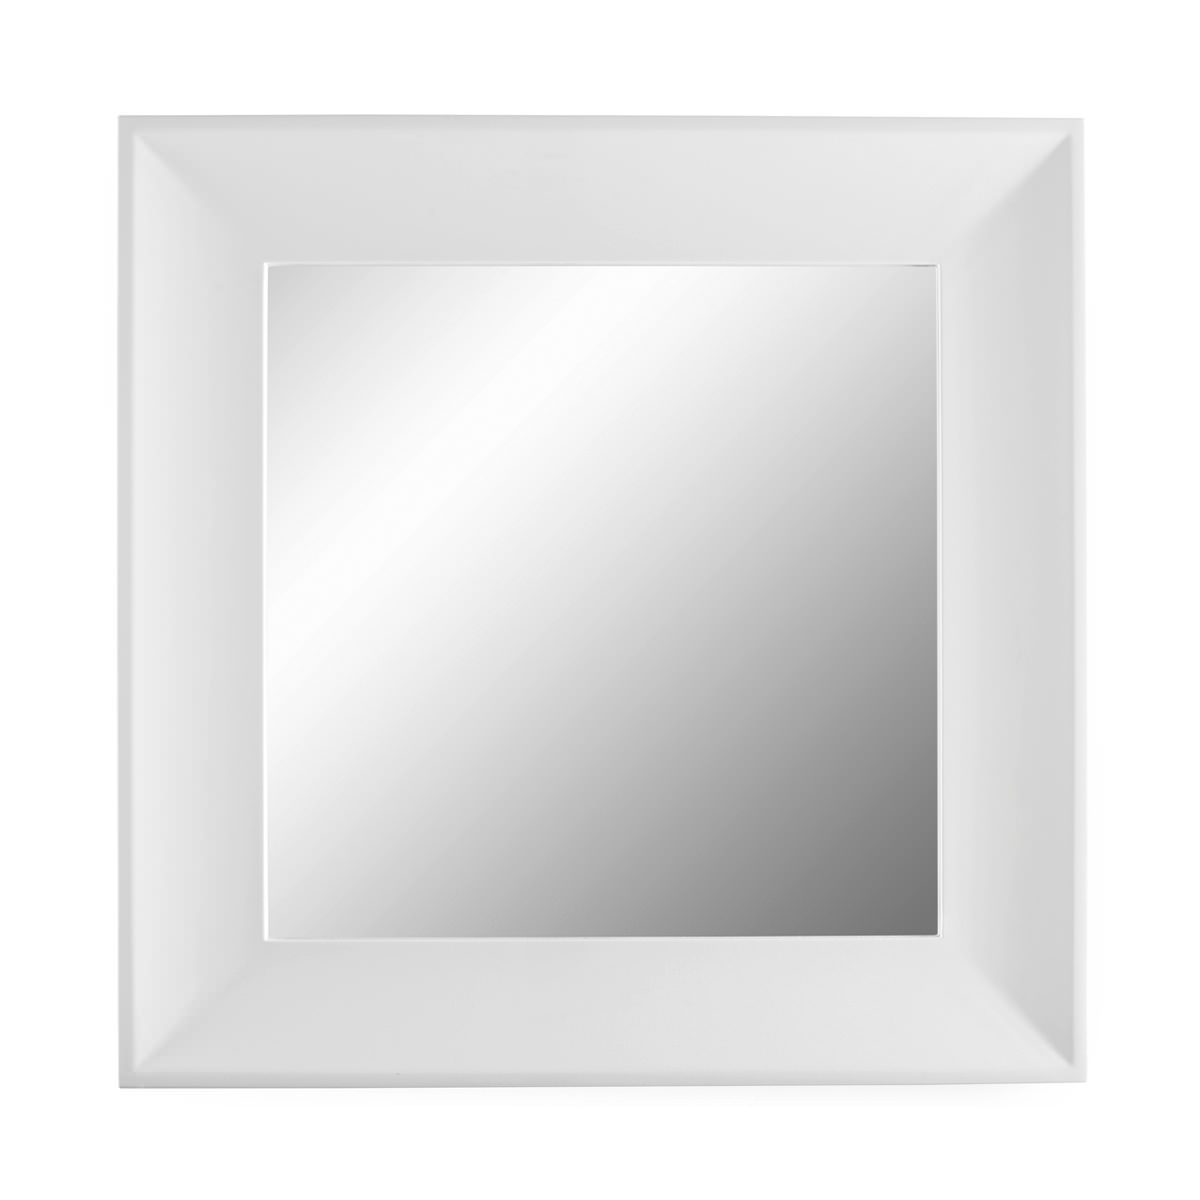 Roper rhodes provence square white mirror 700 x 700mm pro7mw for Square mirror